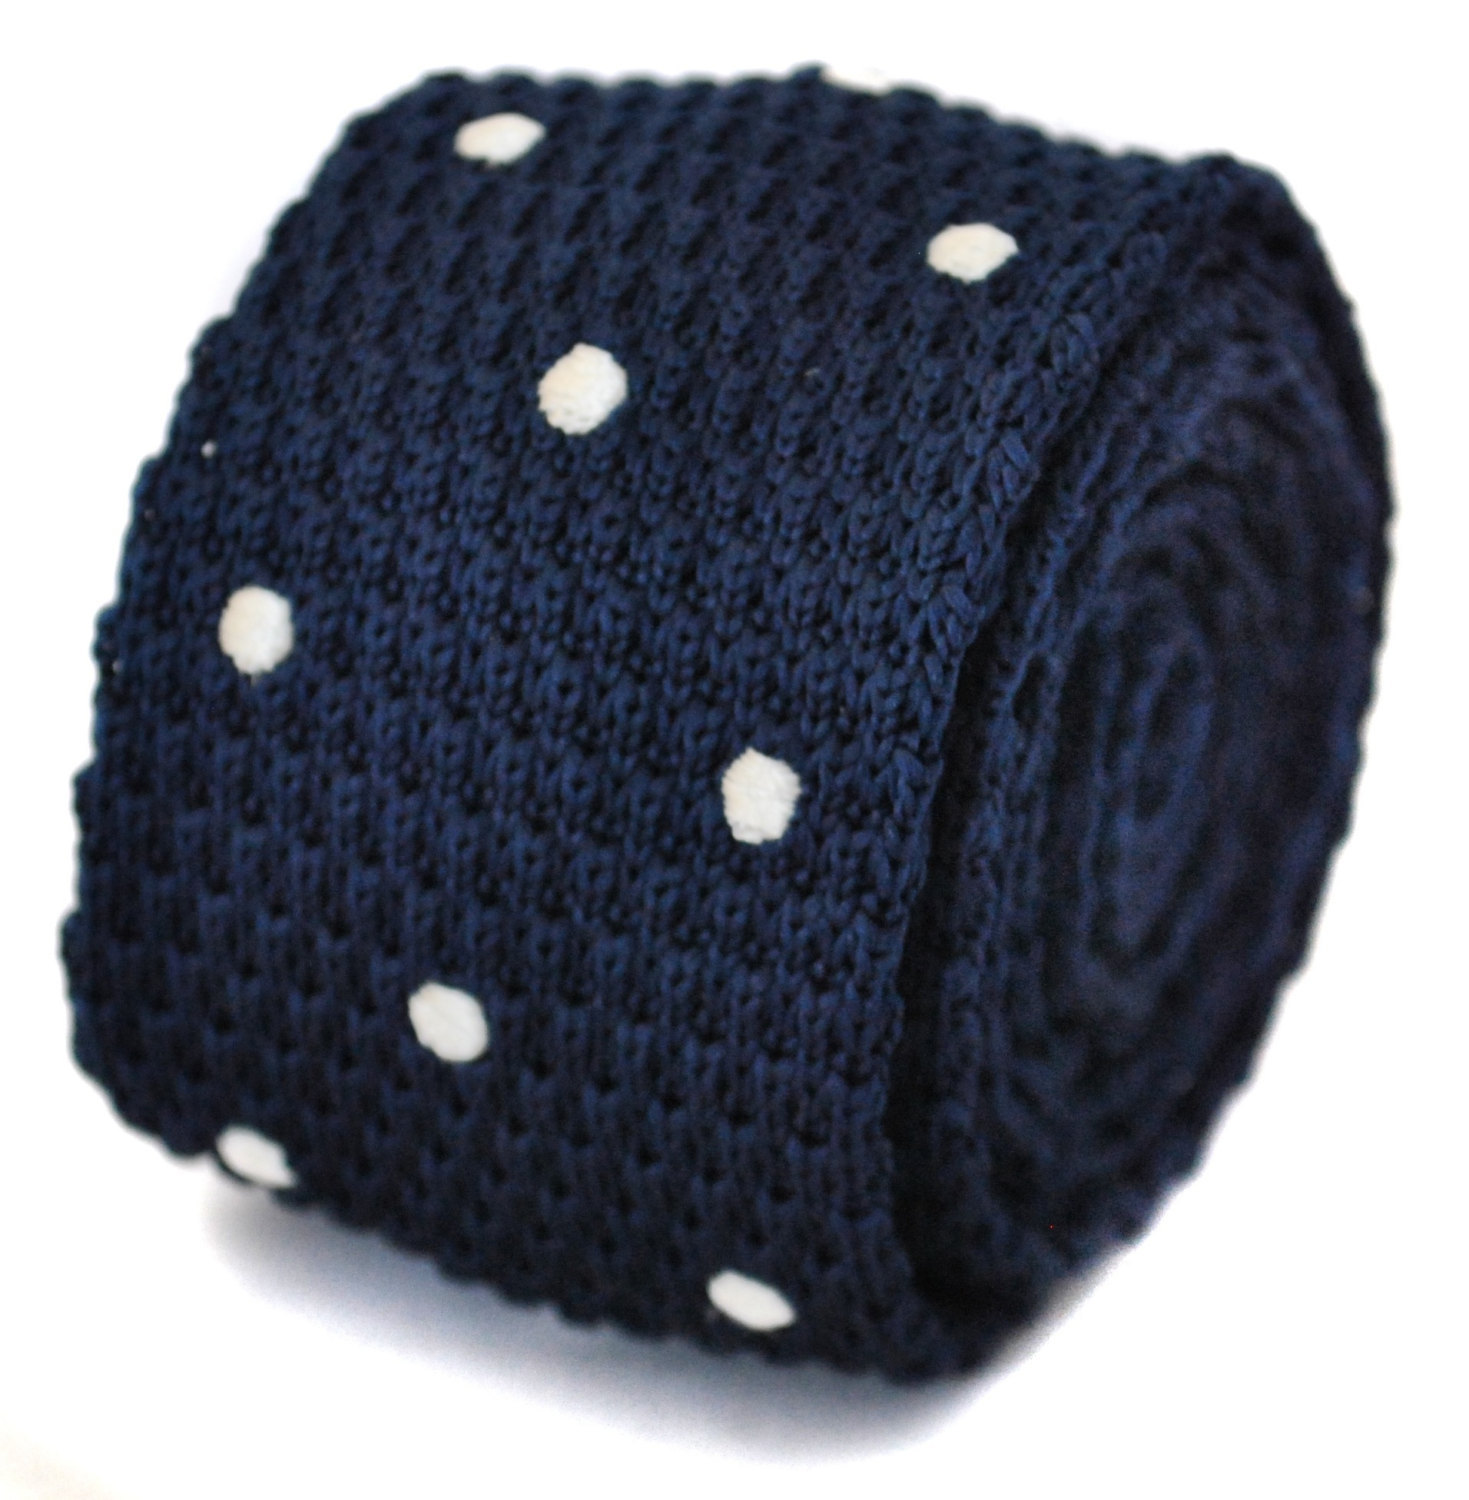 knitted navy and white spotted skinny tie in pointed end by Frederick Thomas FT1